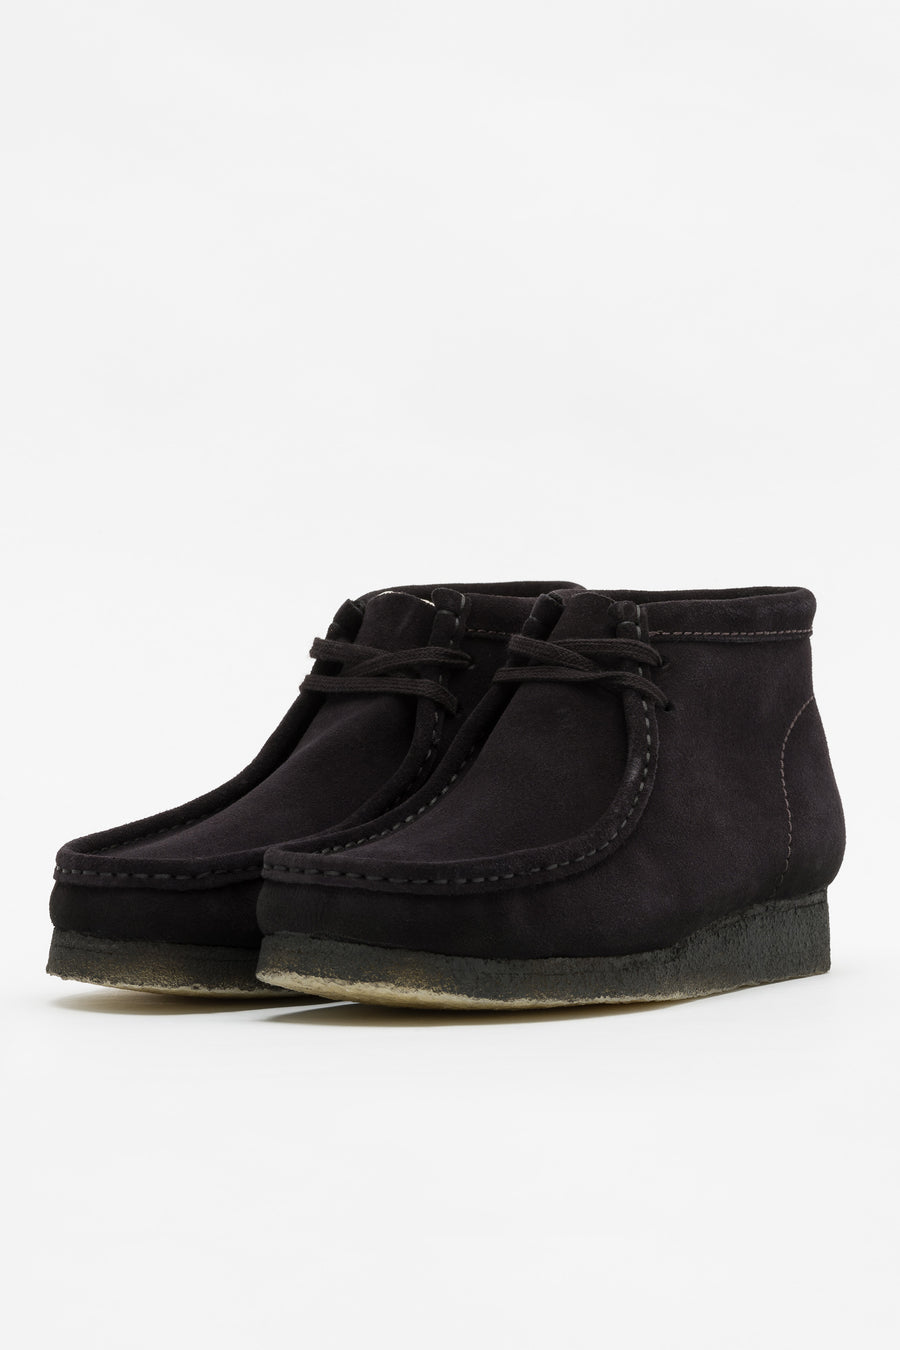 Clarks Wallabee Boot in Black Suede - Notre